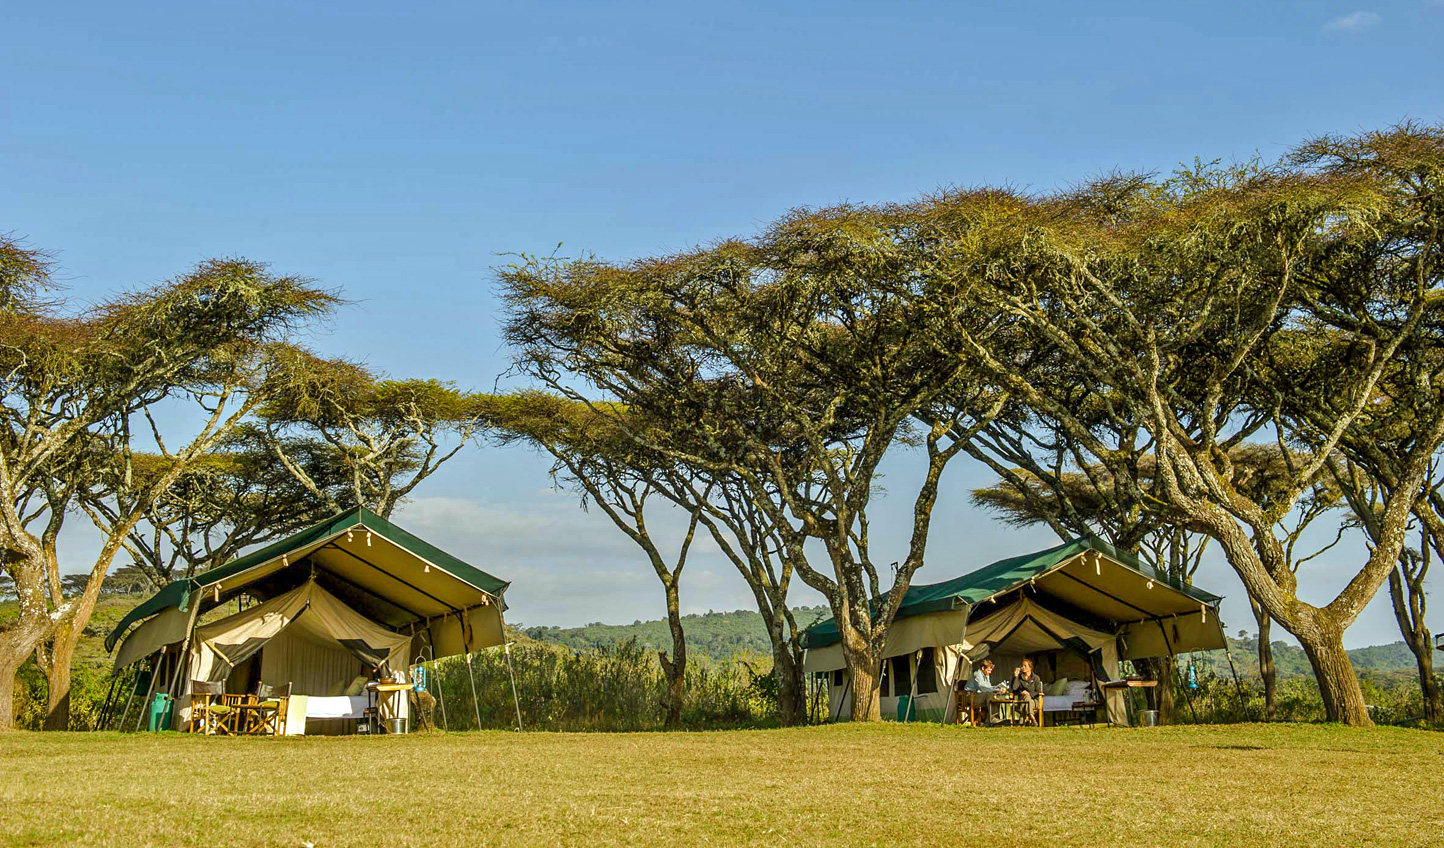 Get closer to the action at Sanctuary Ngorongoro Crater Camp